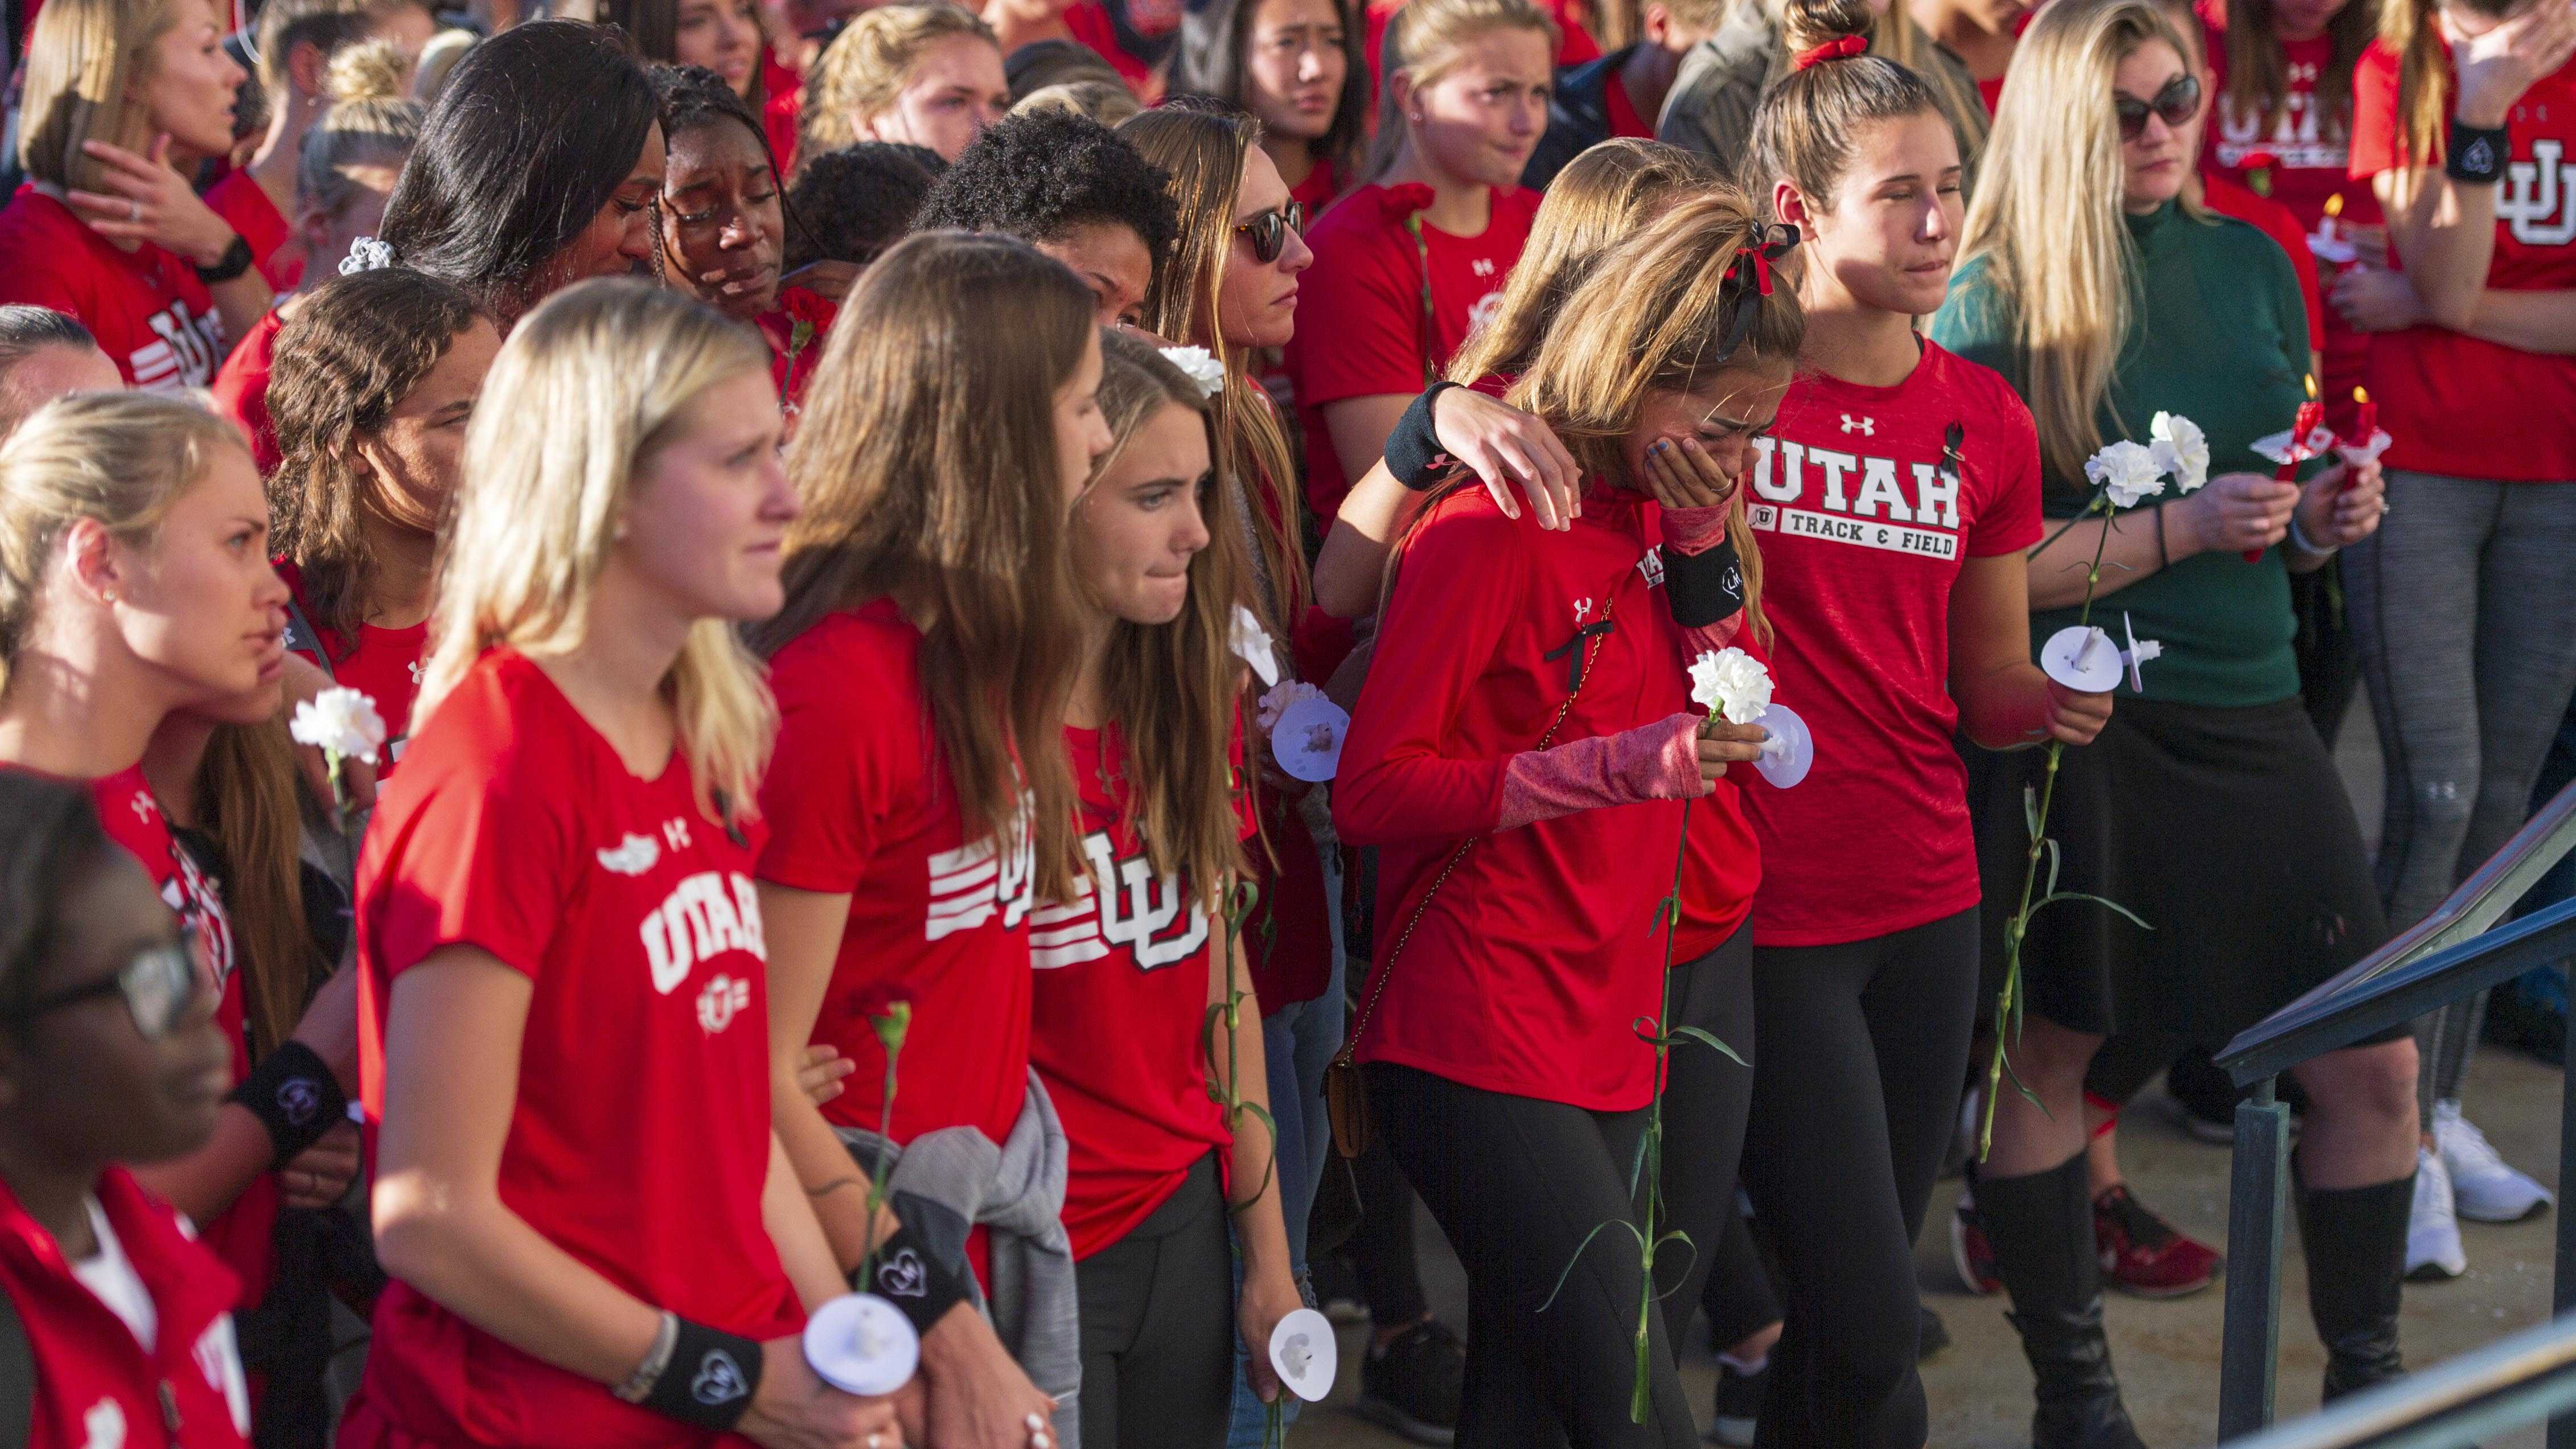 The Utah women's track and field team, students, staff, family and friends attend a vigil on the steps of the Park Building for Lauren McCluskey who was tragically killed on campus at The University of Utah in Salt Lake City, Utah on Wednesday, Oct. 24, 2018. (Photo by Kiffer Creveling | The Daily Utah Chronicle)